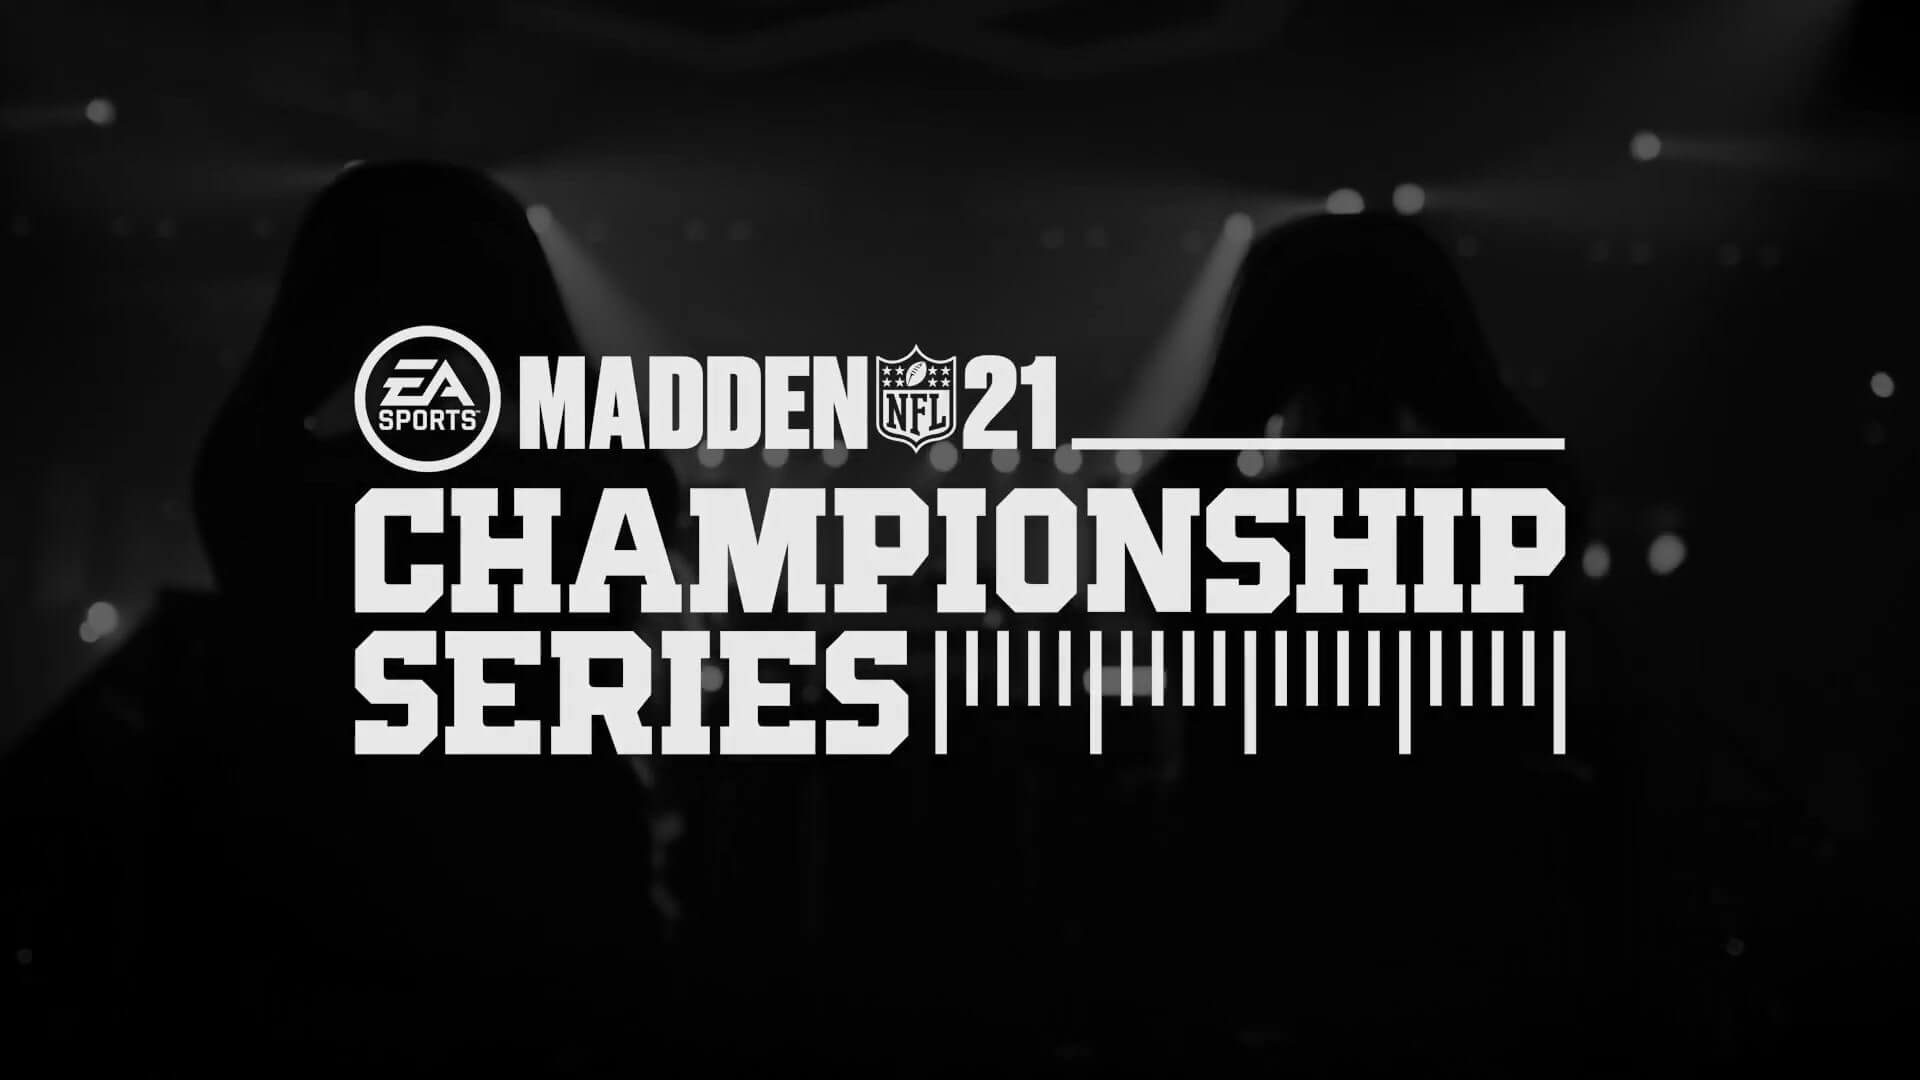 Madden NFL 21 Championship Series Will Bring Weekly Entertainment